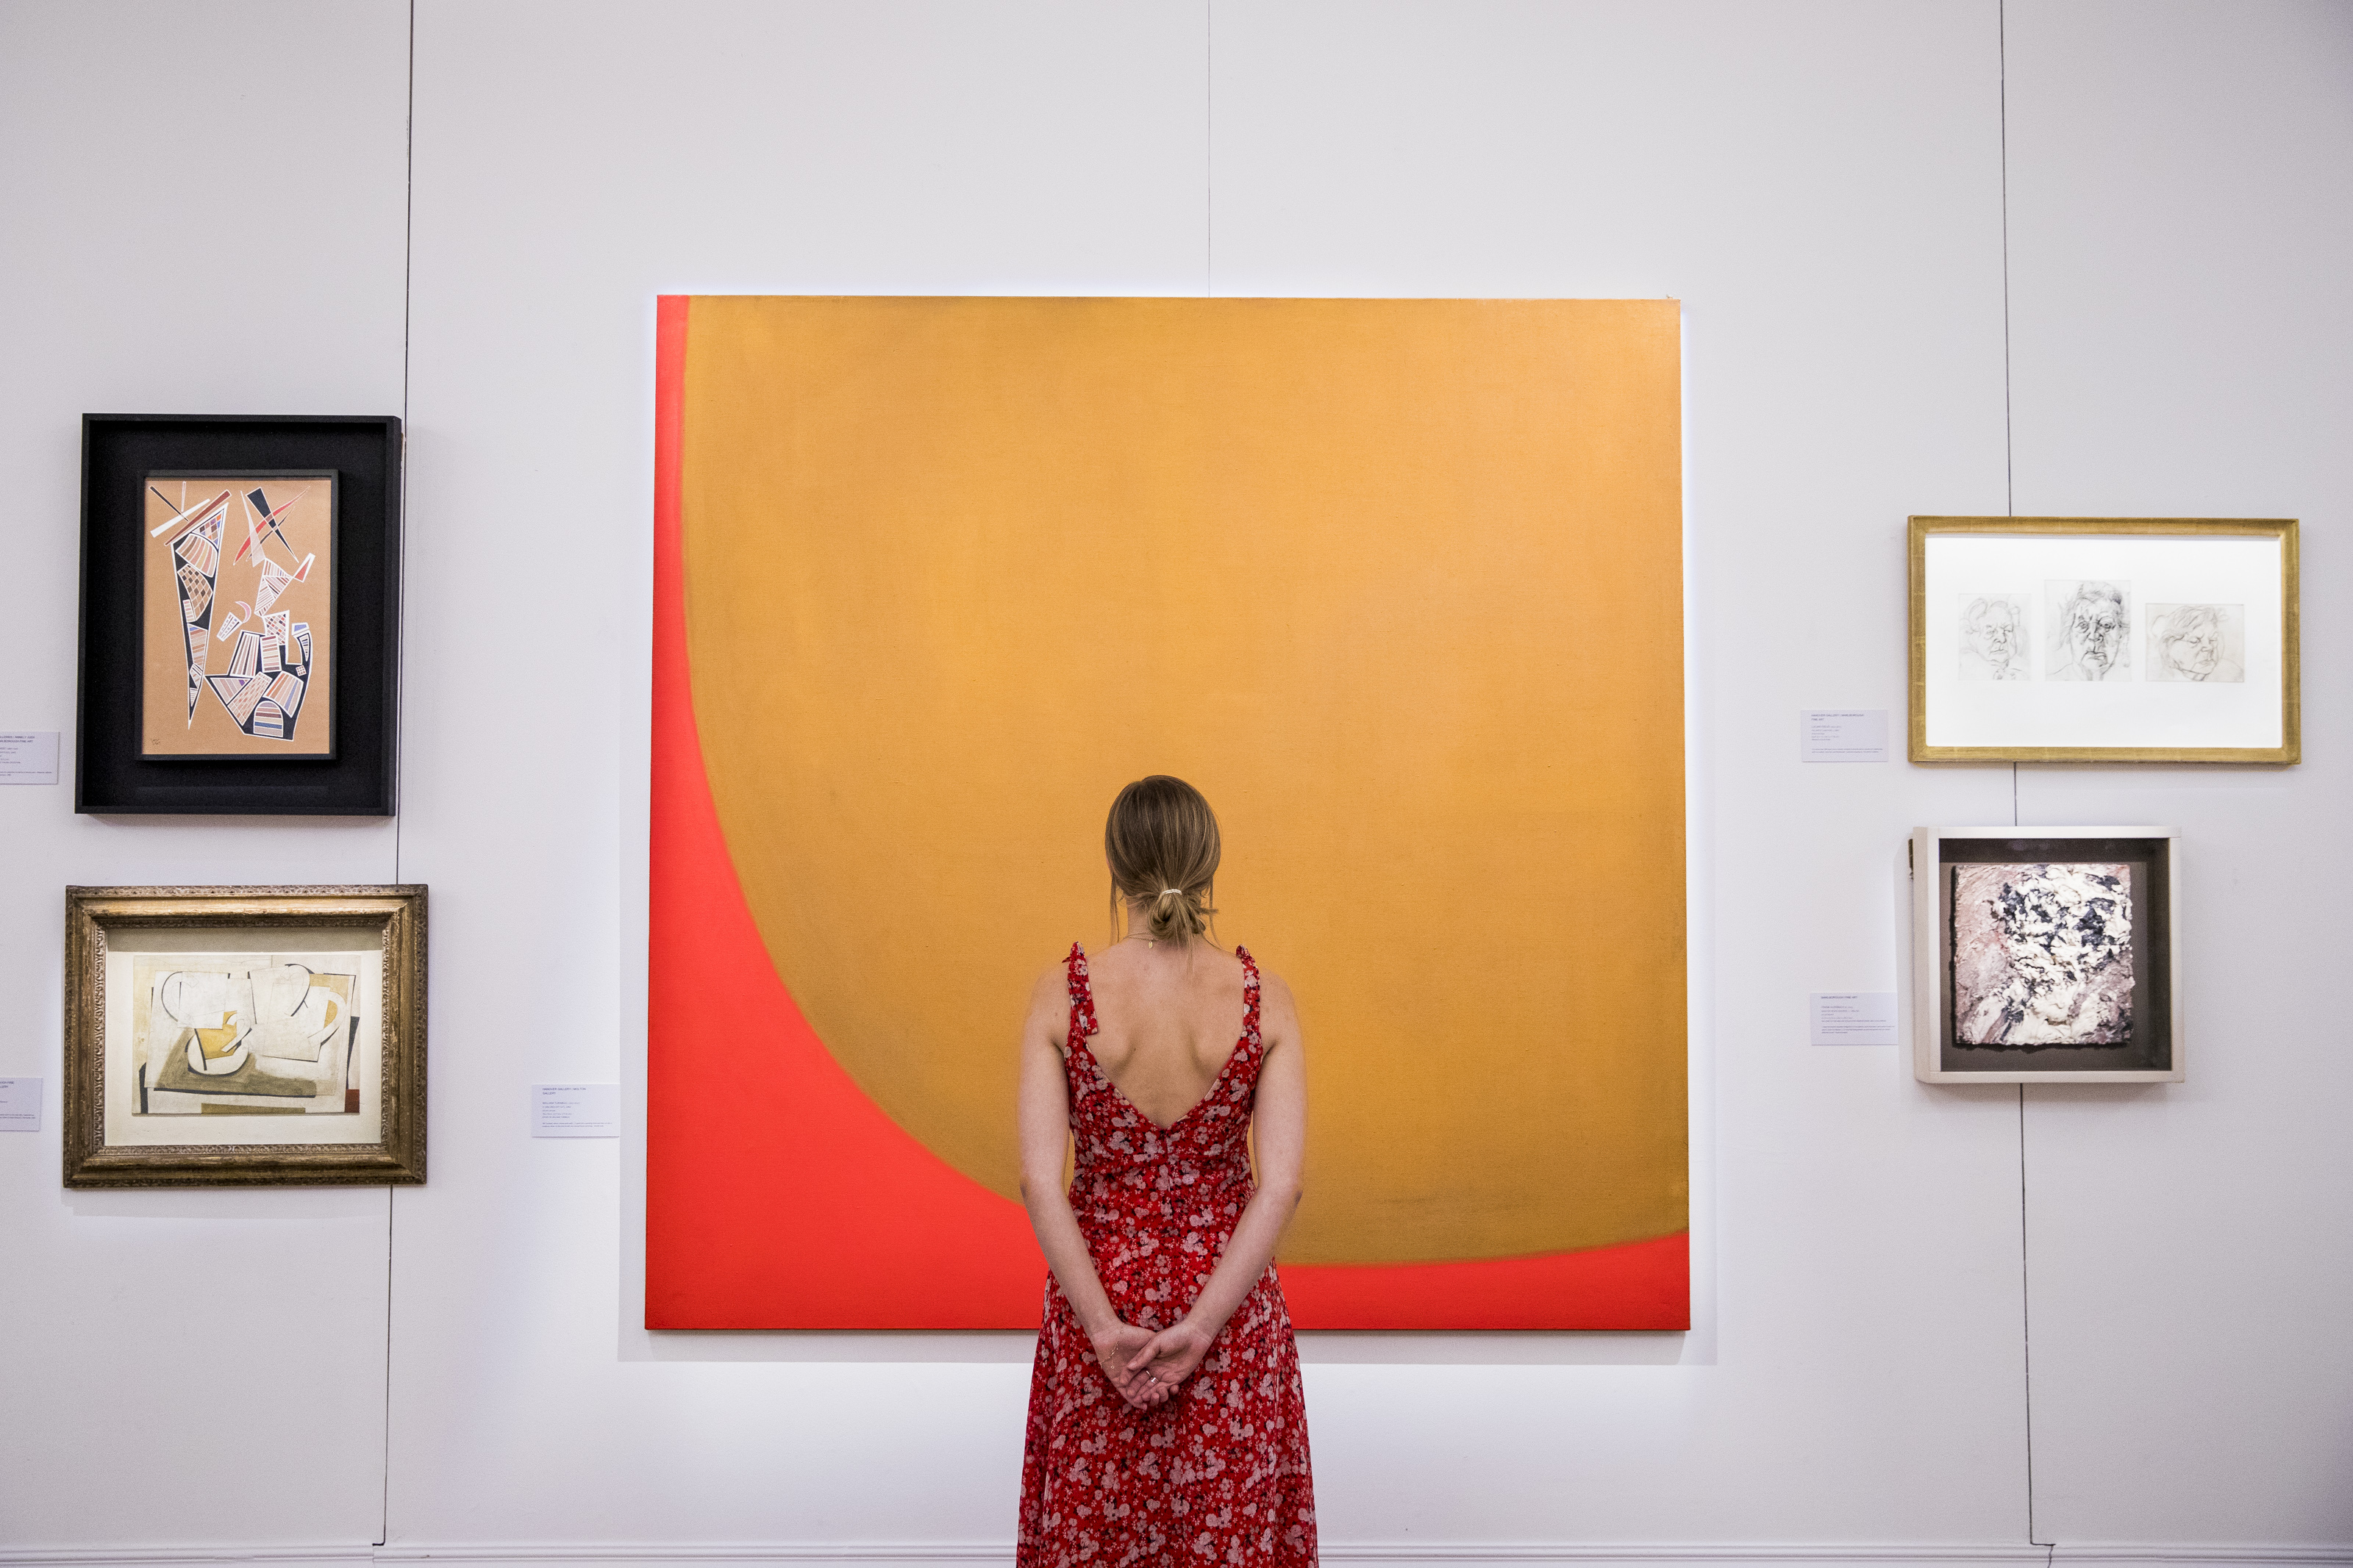 A moment during the exhibition 'Brave New Visions: The Emigres who transformed the British Art World' at Sotheby's London on July 17, 2019.